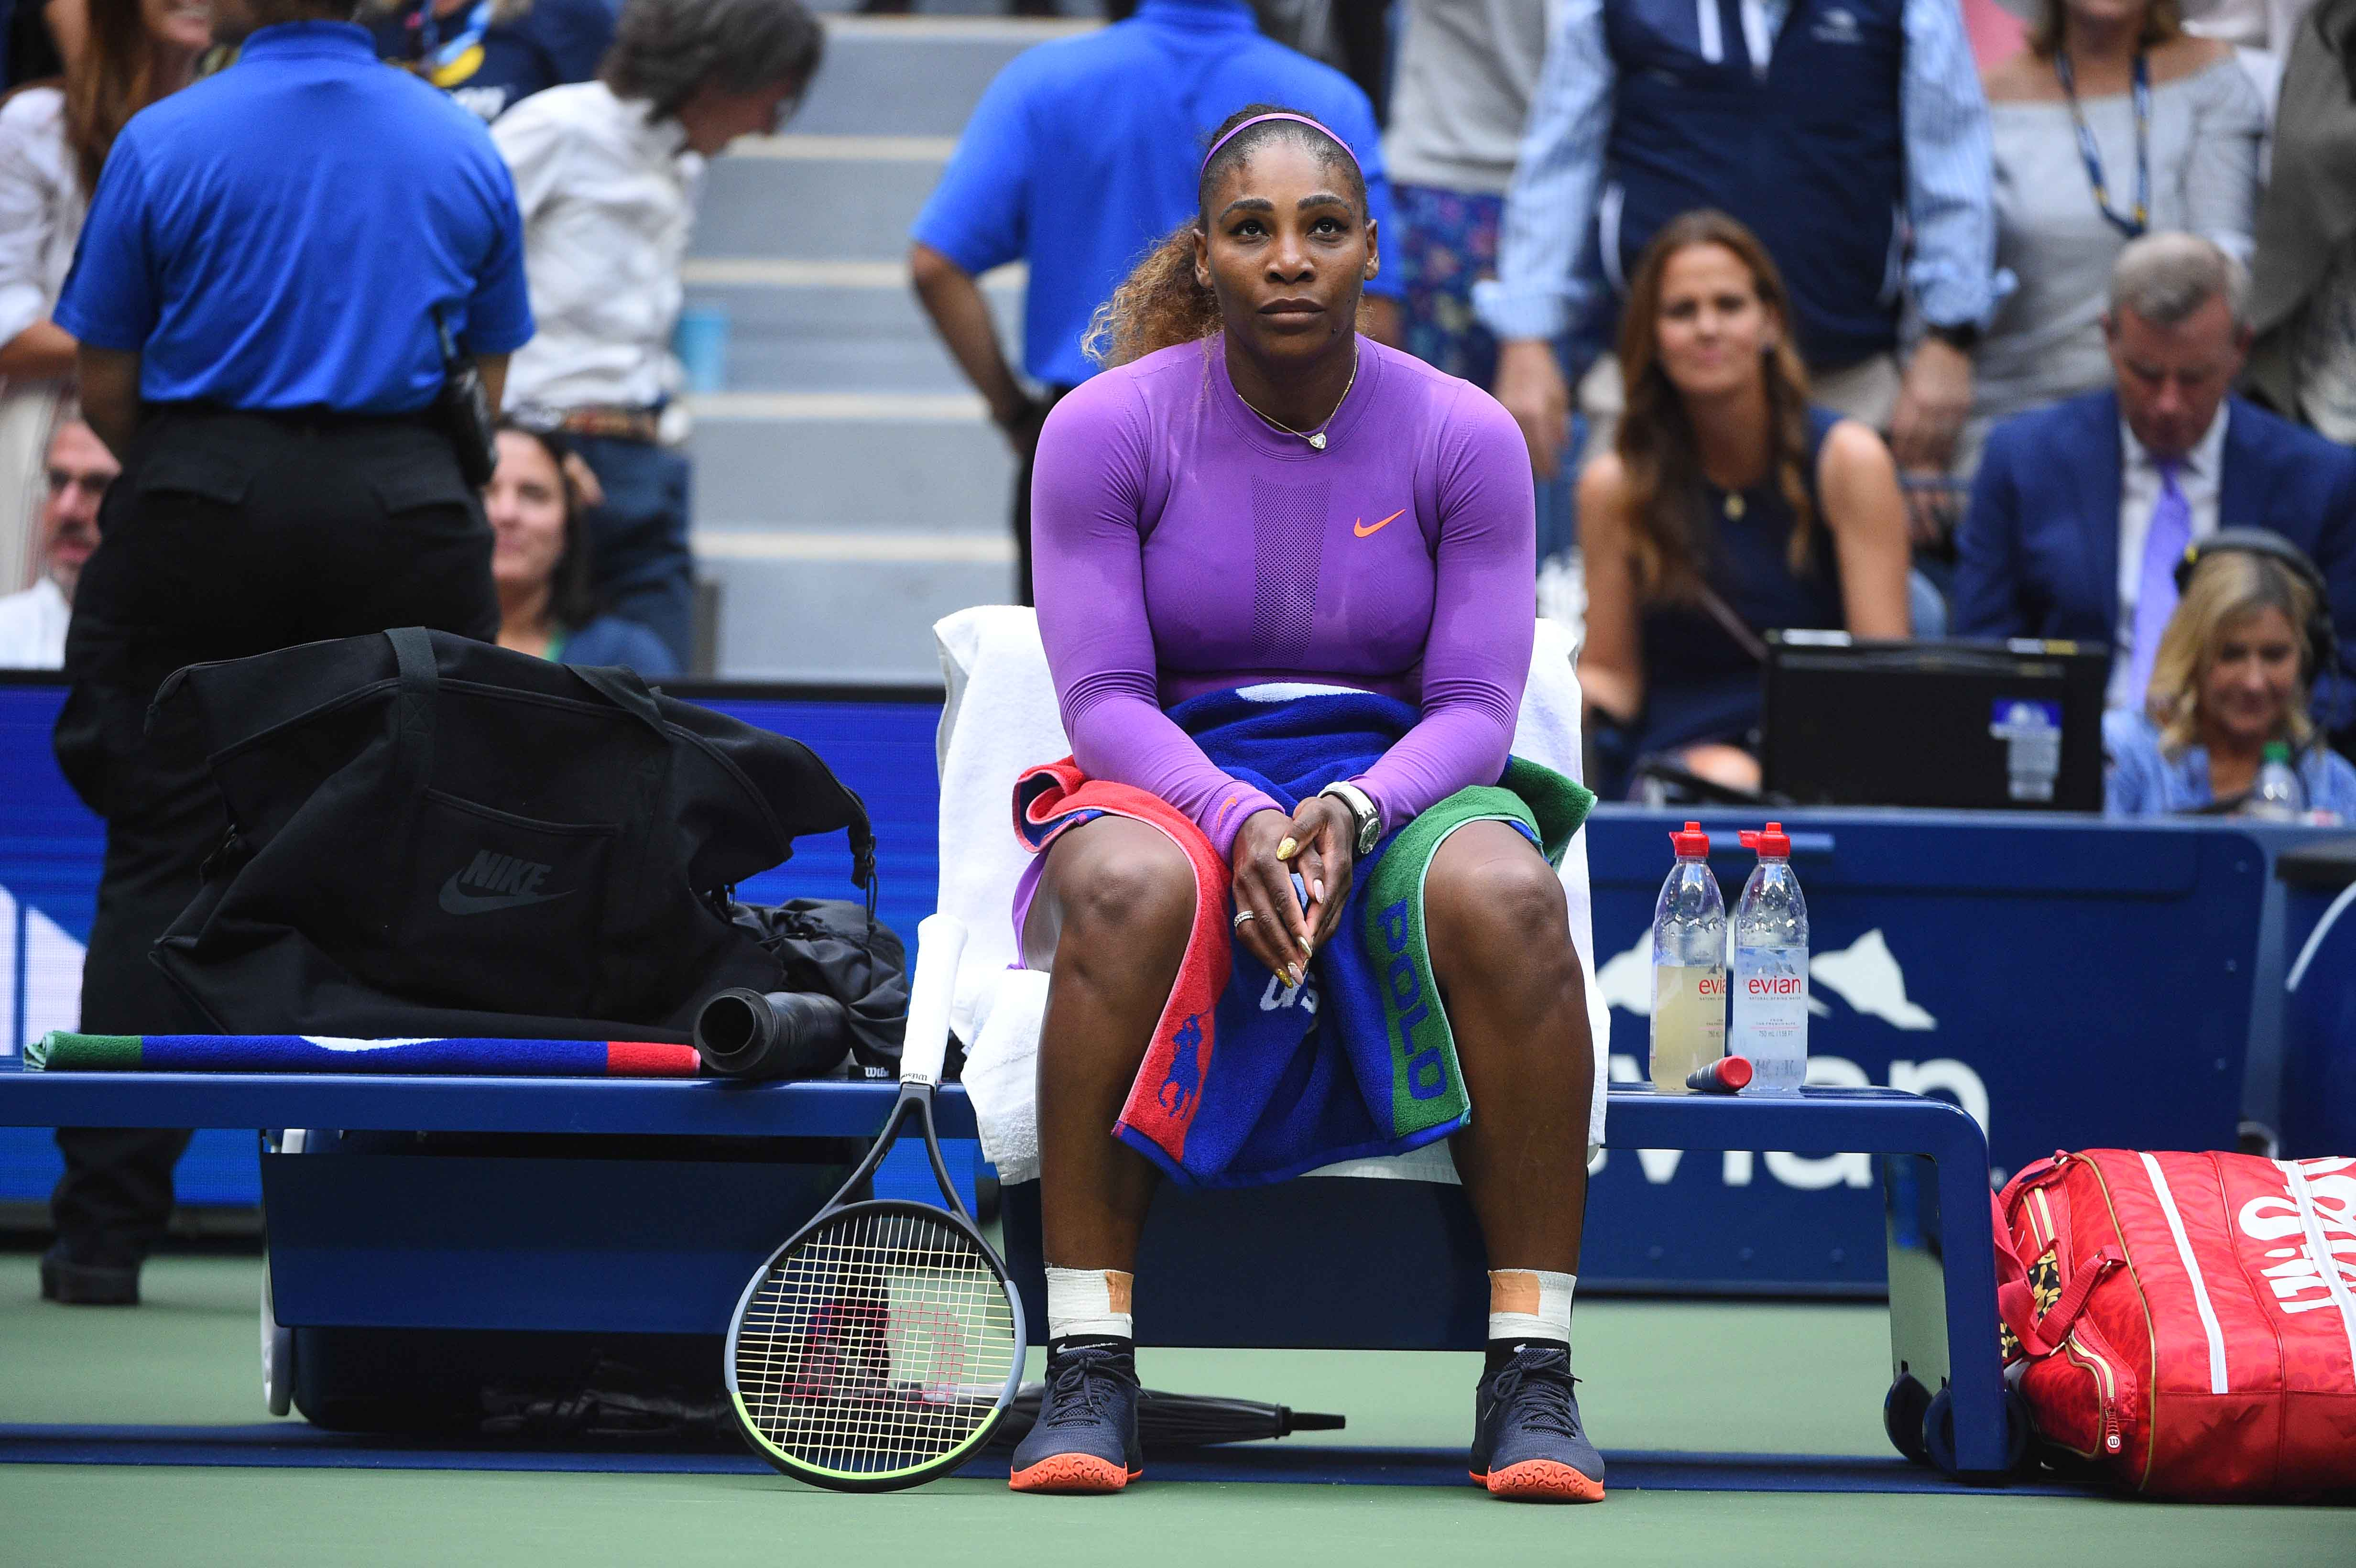 Serena Williams disappointed 2019 US Open